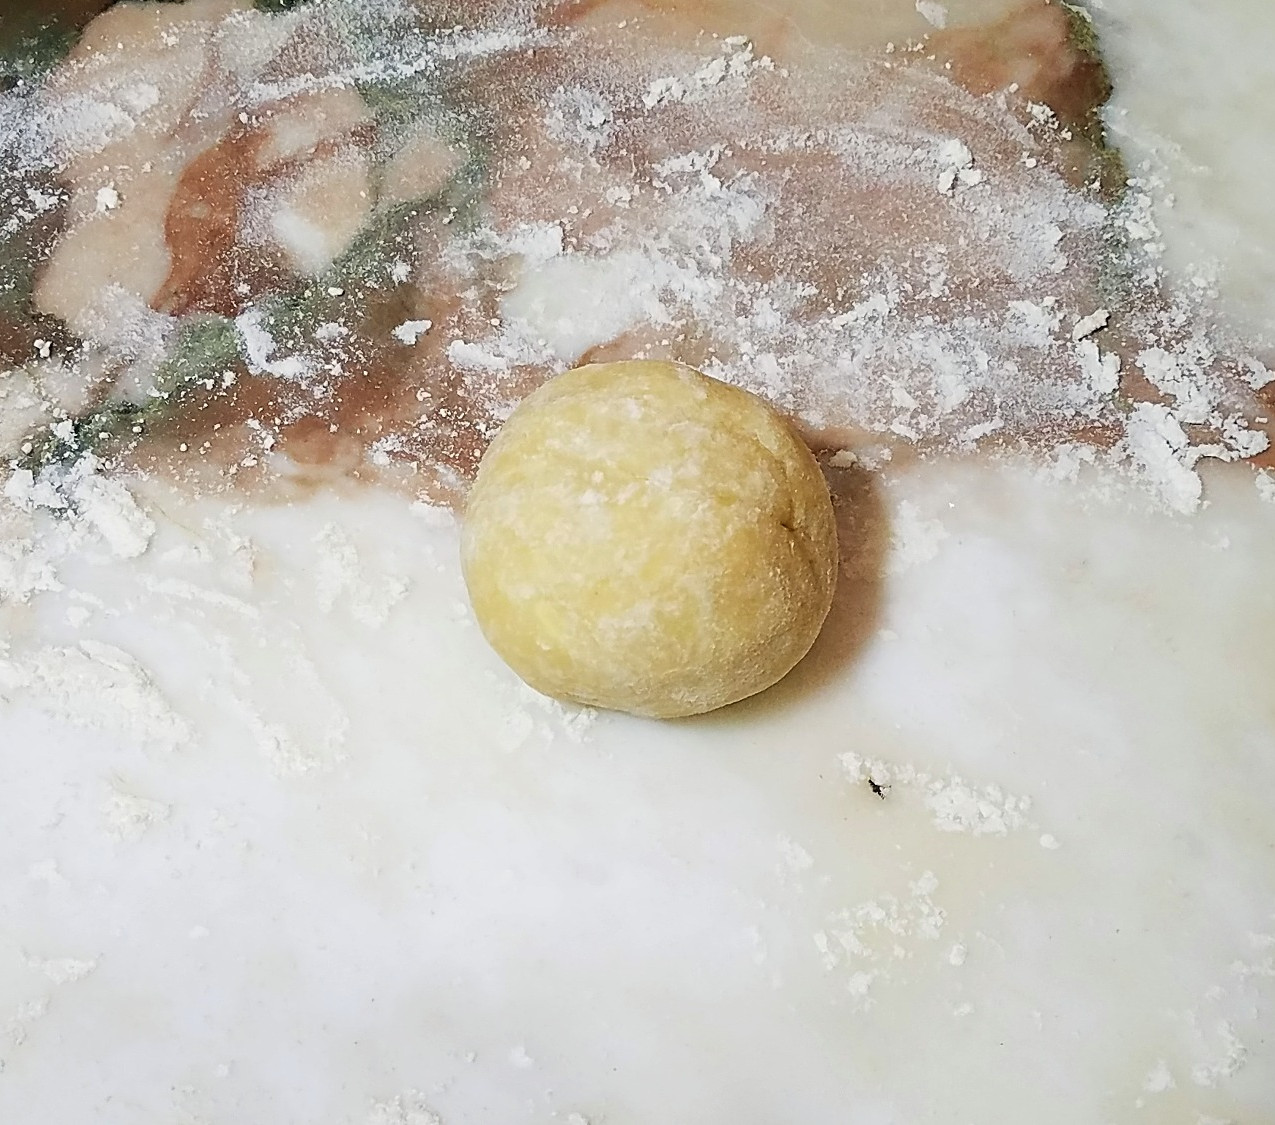 Divide the pastry into 6 balls